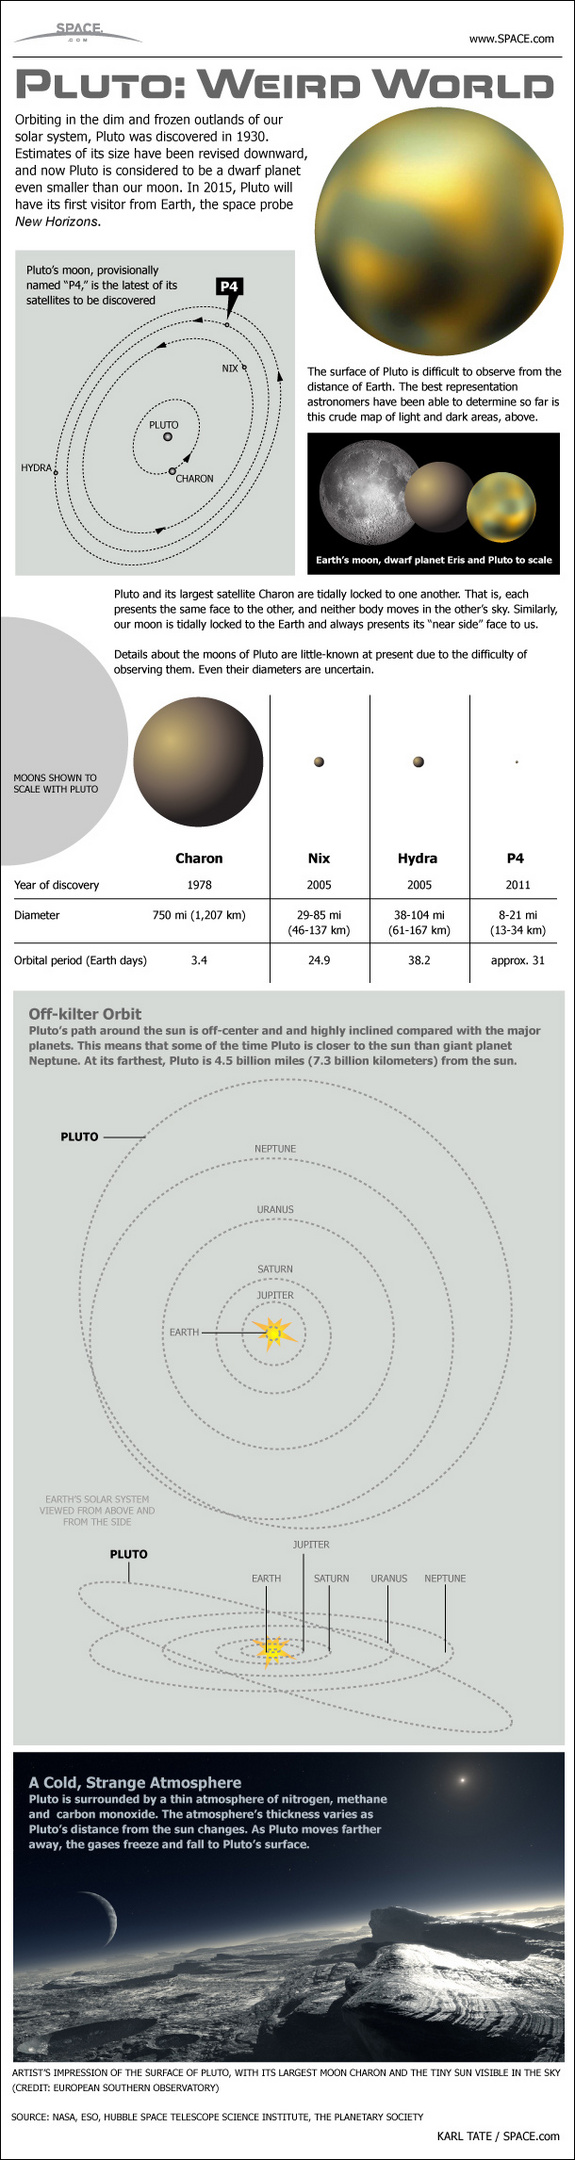 Learn all about Pluto's weirdly eccentric orbit, four moons and more in this SPACE.com infographic.